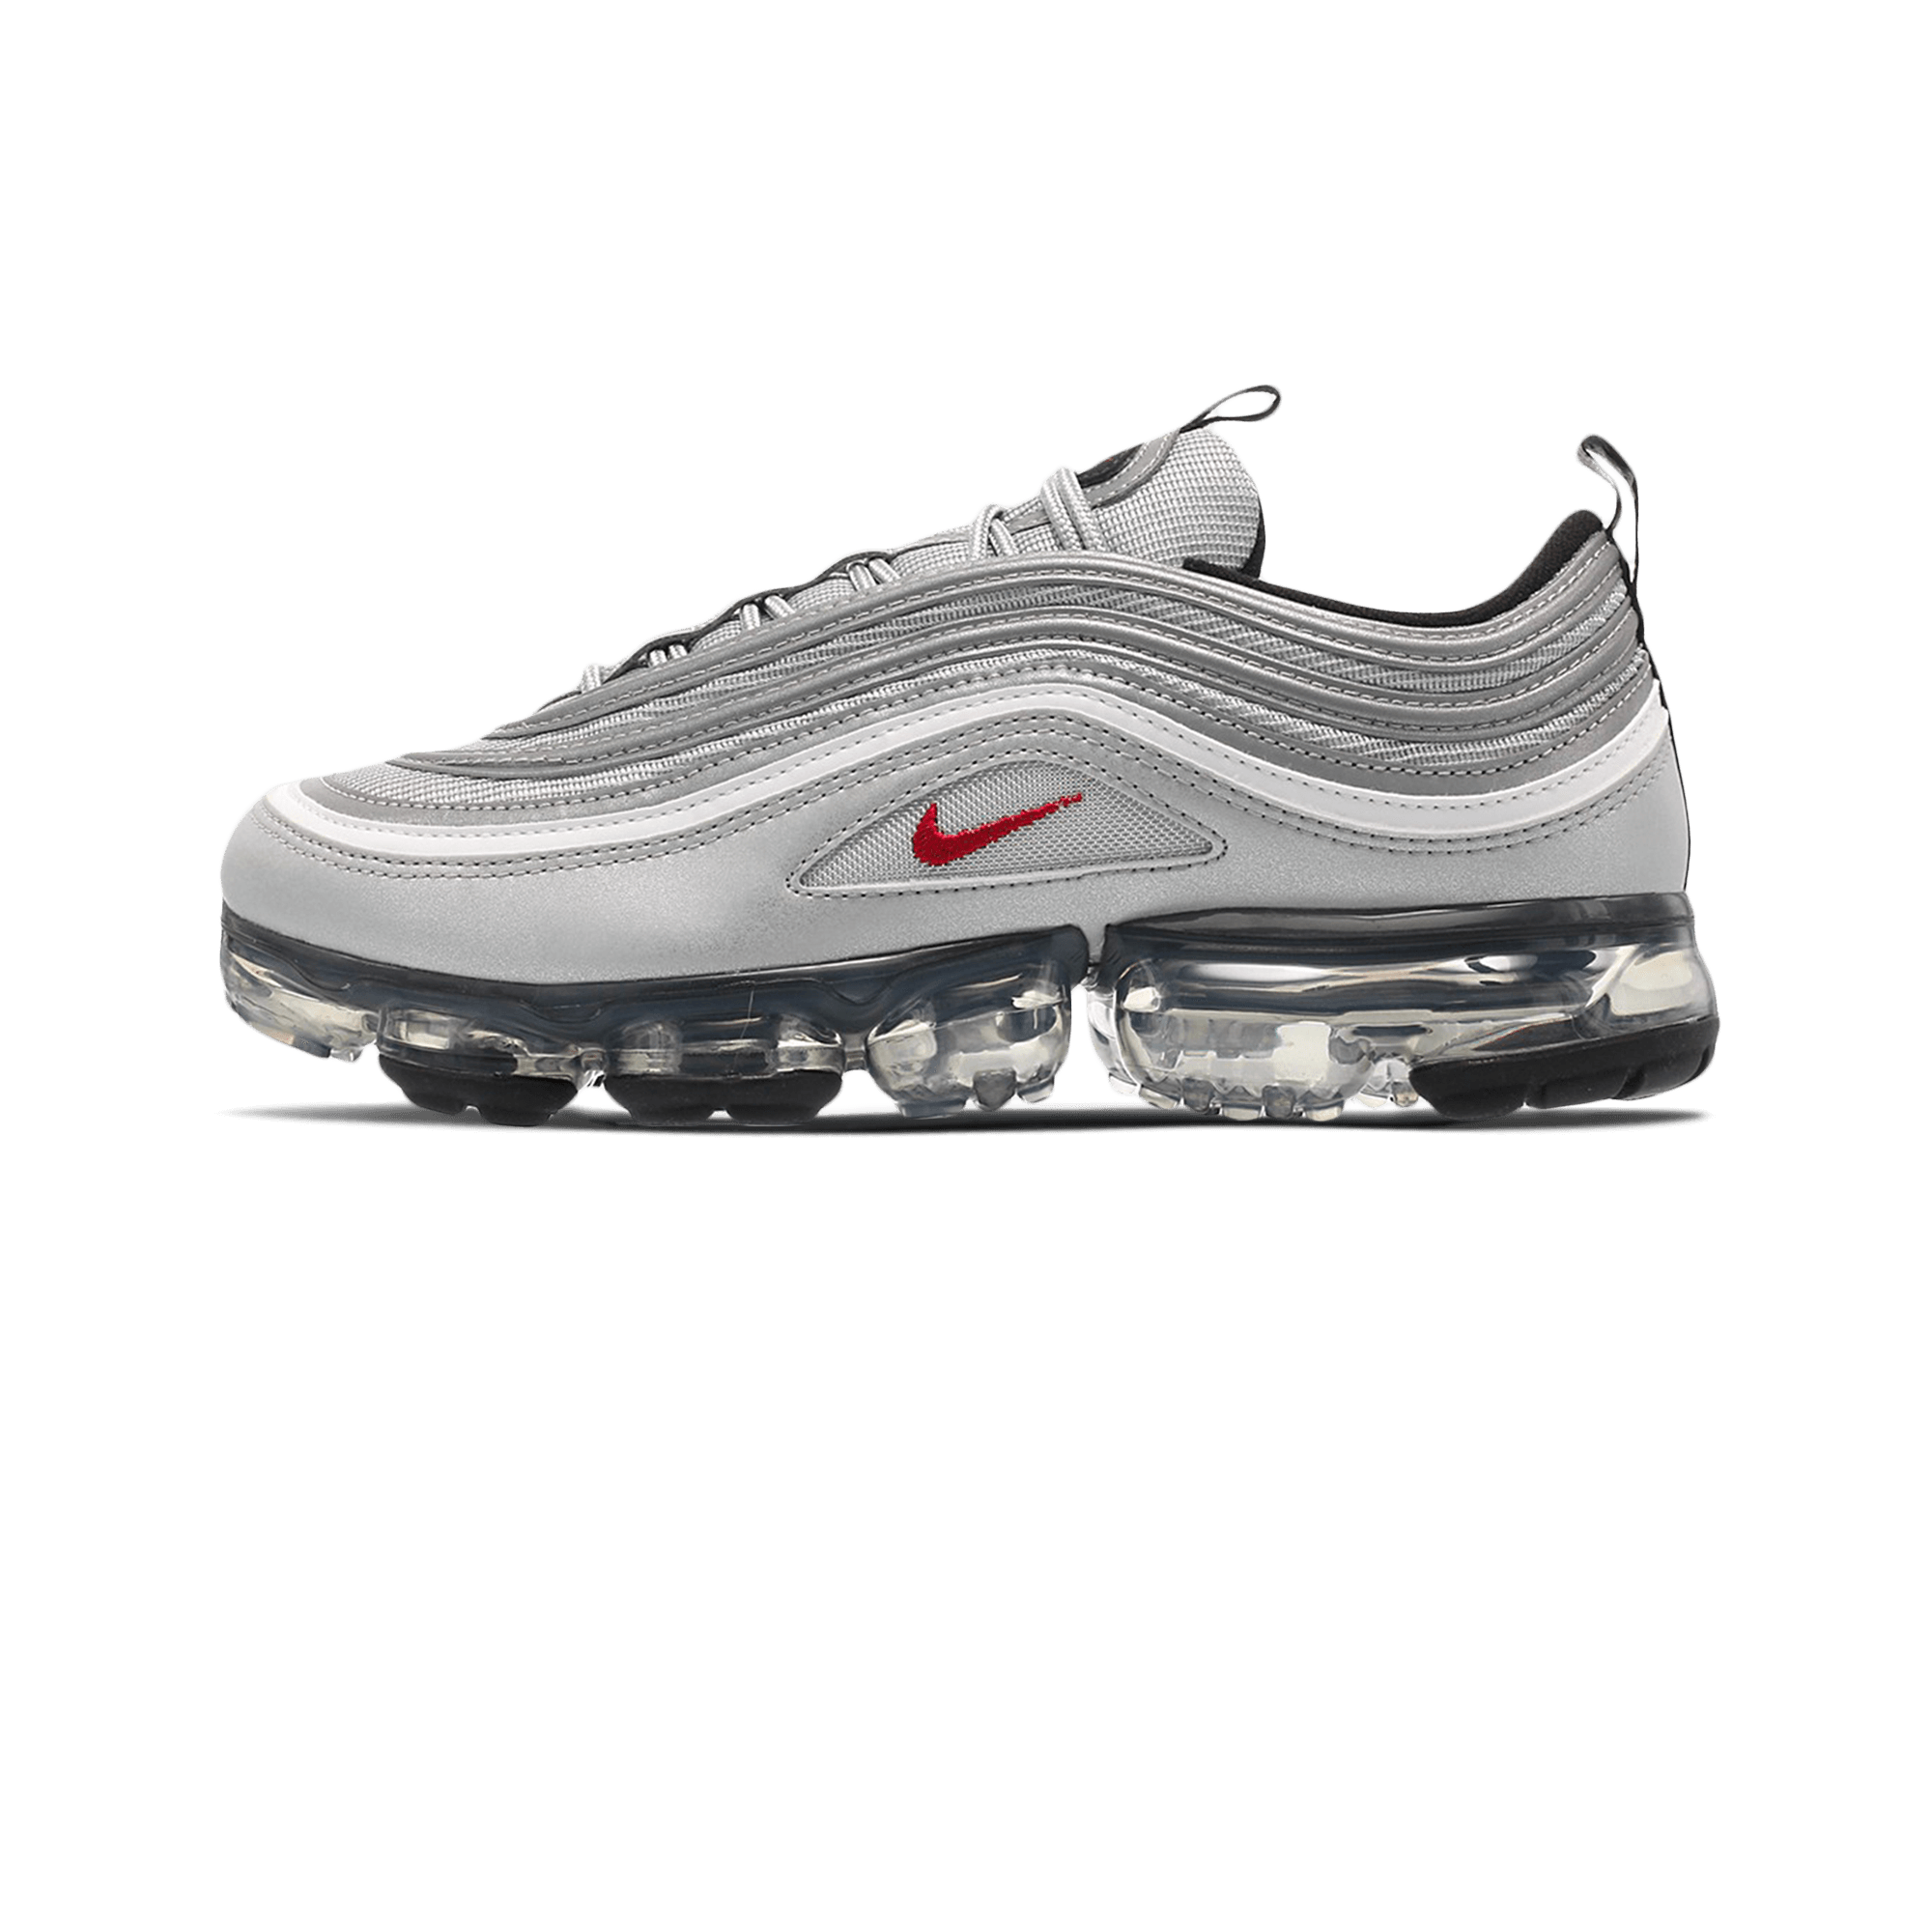 lowest price 1a3aa 87a42 Nike Air Vapormax '97 metallic silver / varsity red - Men | Holypopstore.com